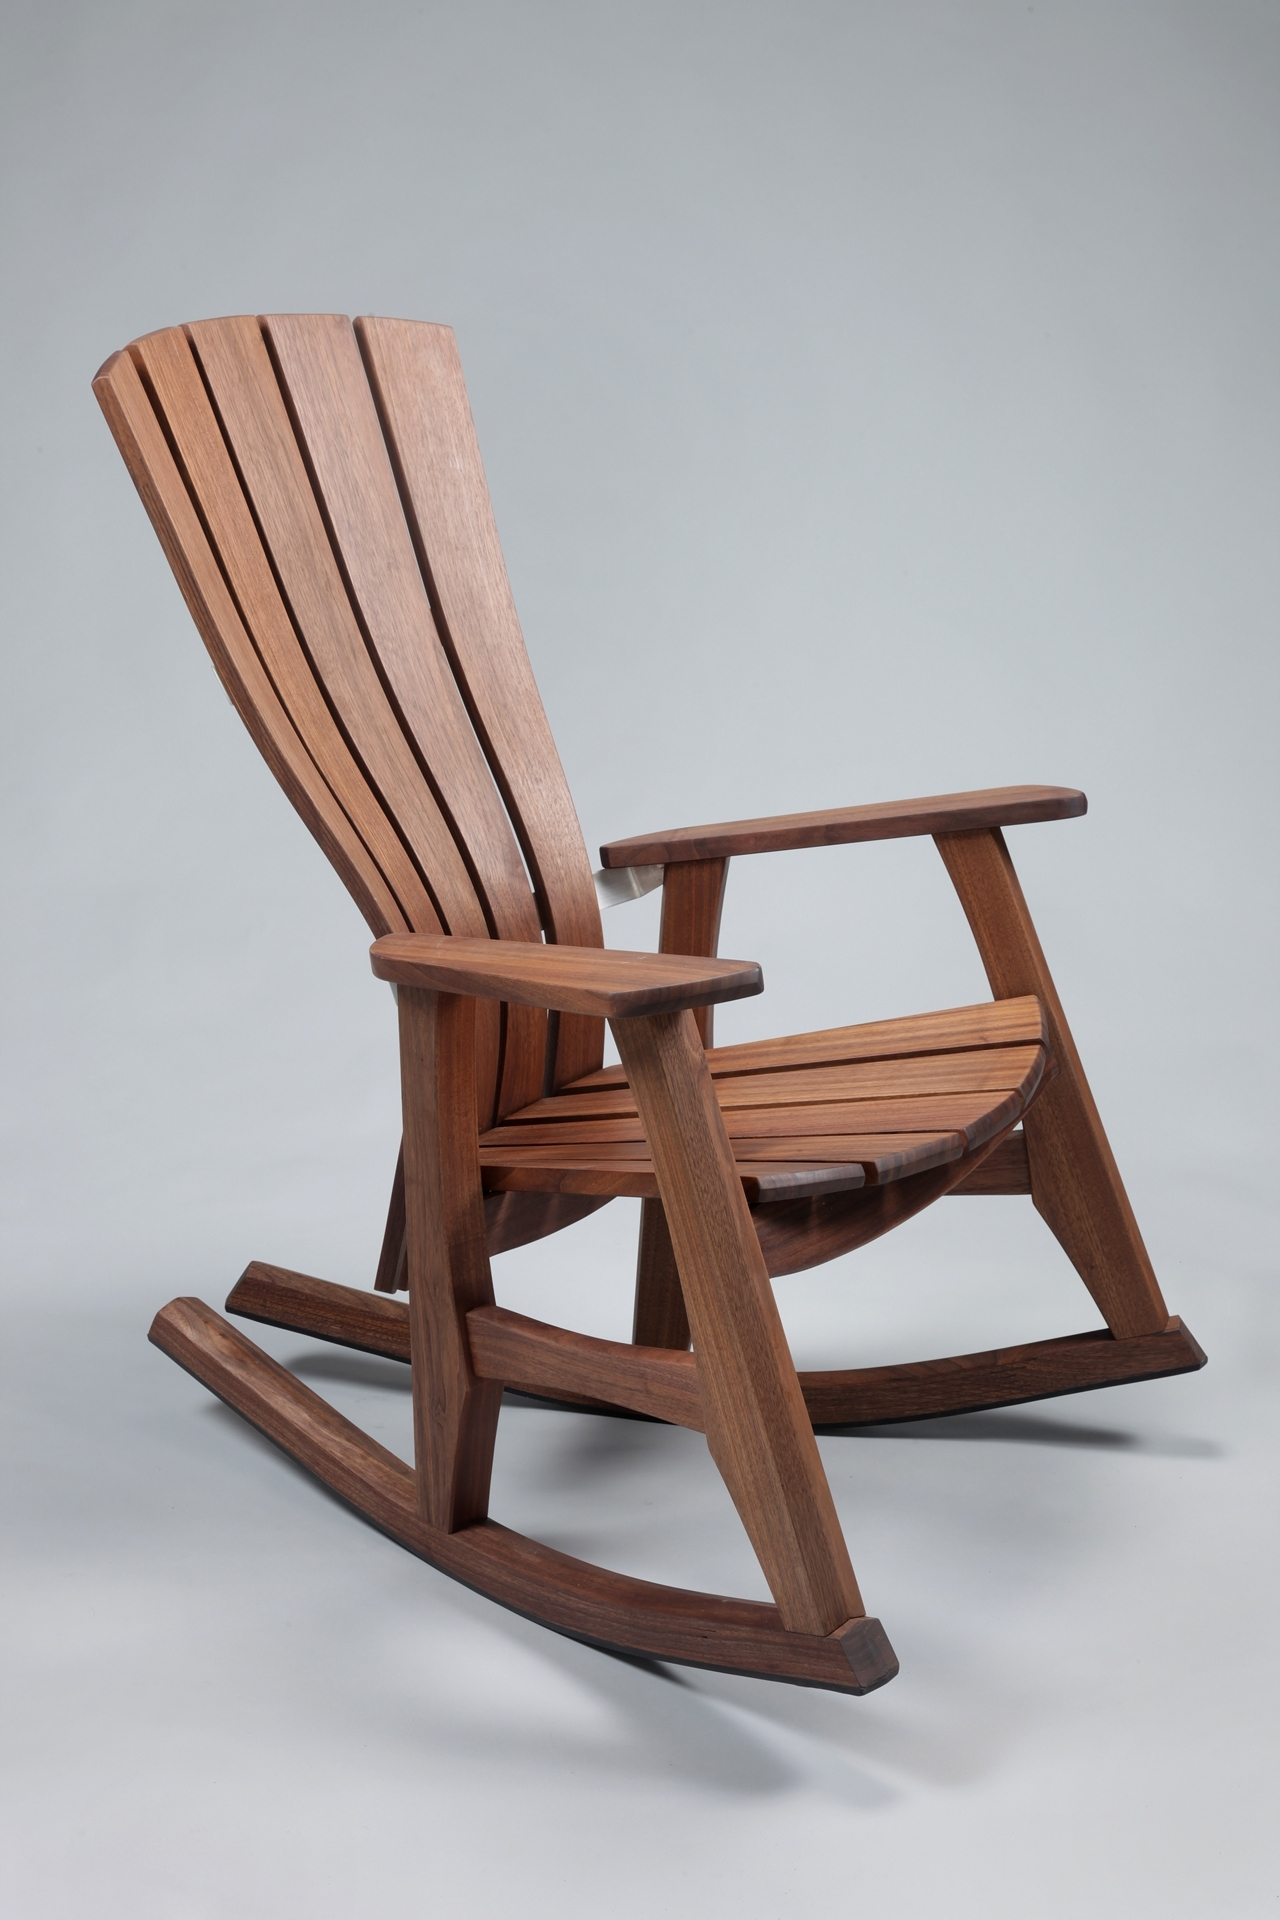 Outdoor Wooden Rocking Chairs Back : Pleasure Outdoor Wooden Rocking Regarding Popular Rocking Chair Outdoor Wooden (View 12 of 20)